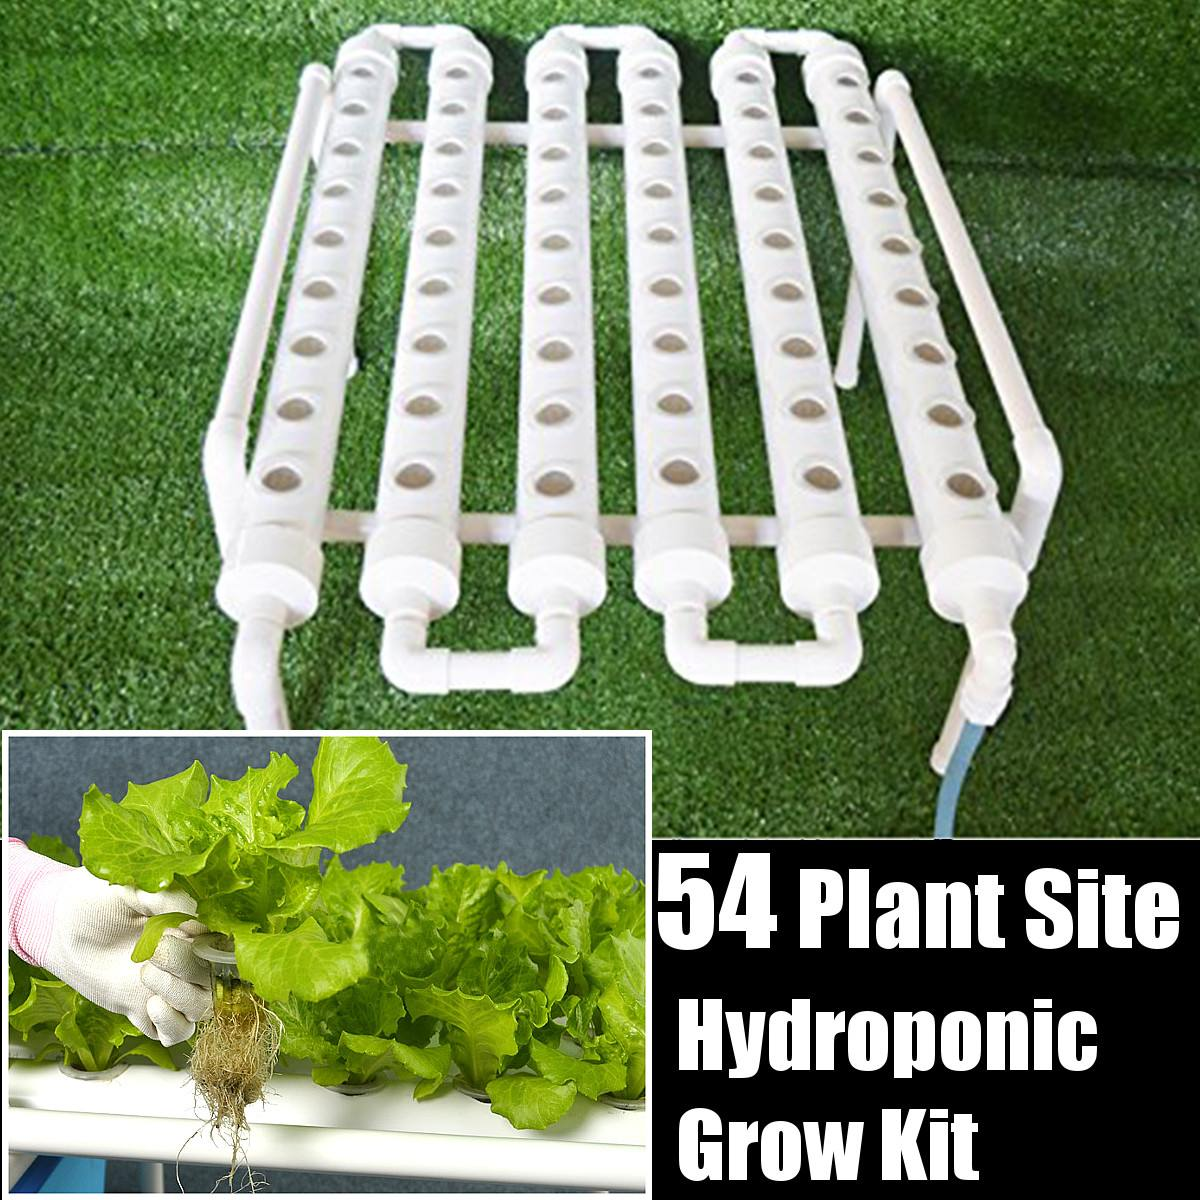 54 Holes Hydroponic Piping Site Grow Kit Deep Water Culture Planting Box Gardening System Nursery Pot Hydroponic Rack 220V54 Holes Hydroponic Piping Site Grow Kit Deep Water Culture Planting Box Gardening System Nursery Pot Hydroponic Rack 220V